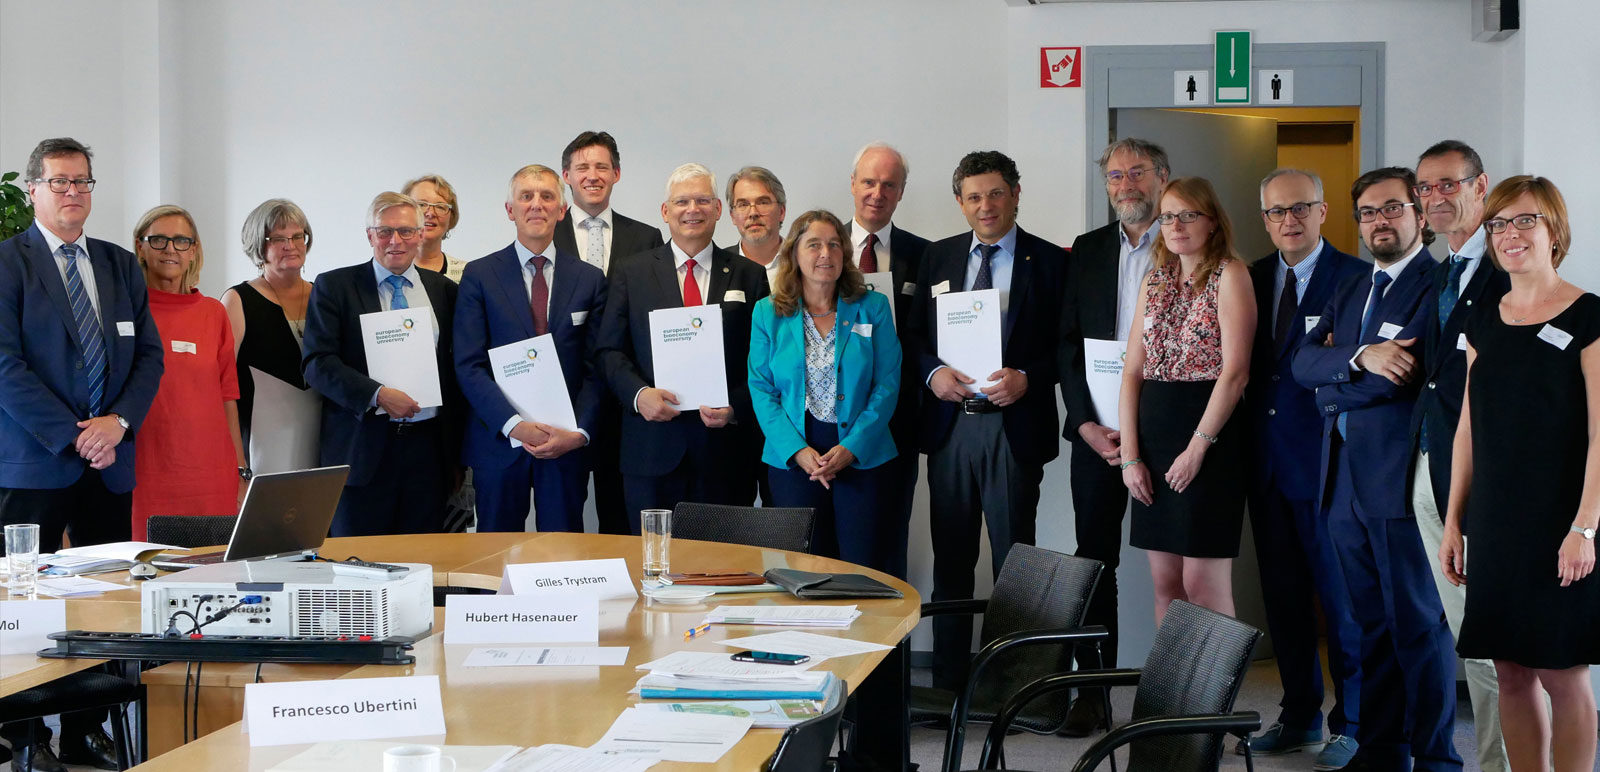 Contract Signed: European universities join forces to create a new generation of experts